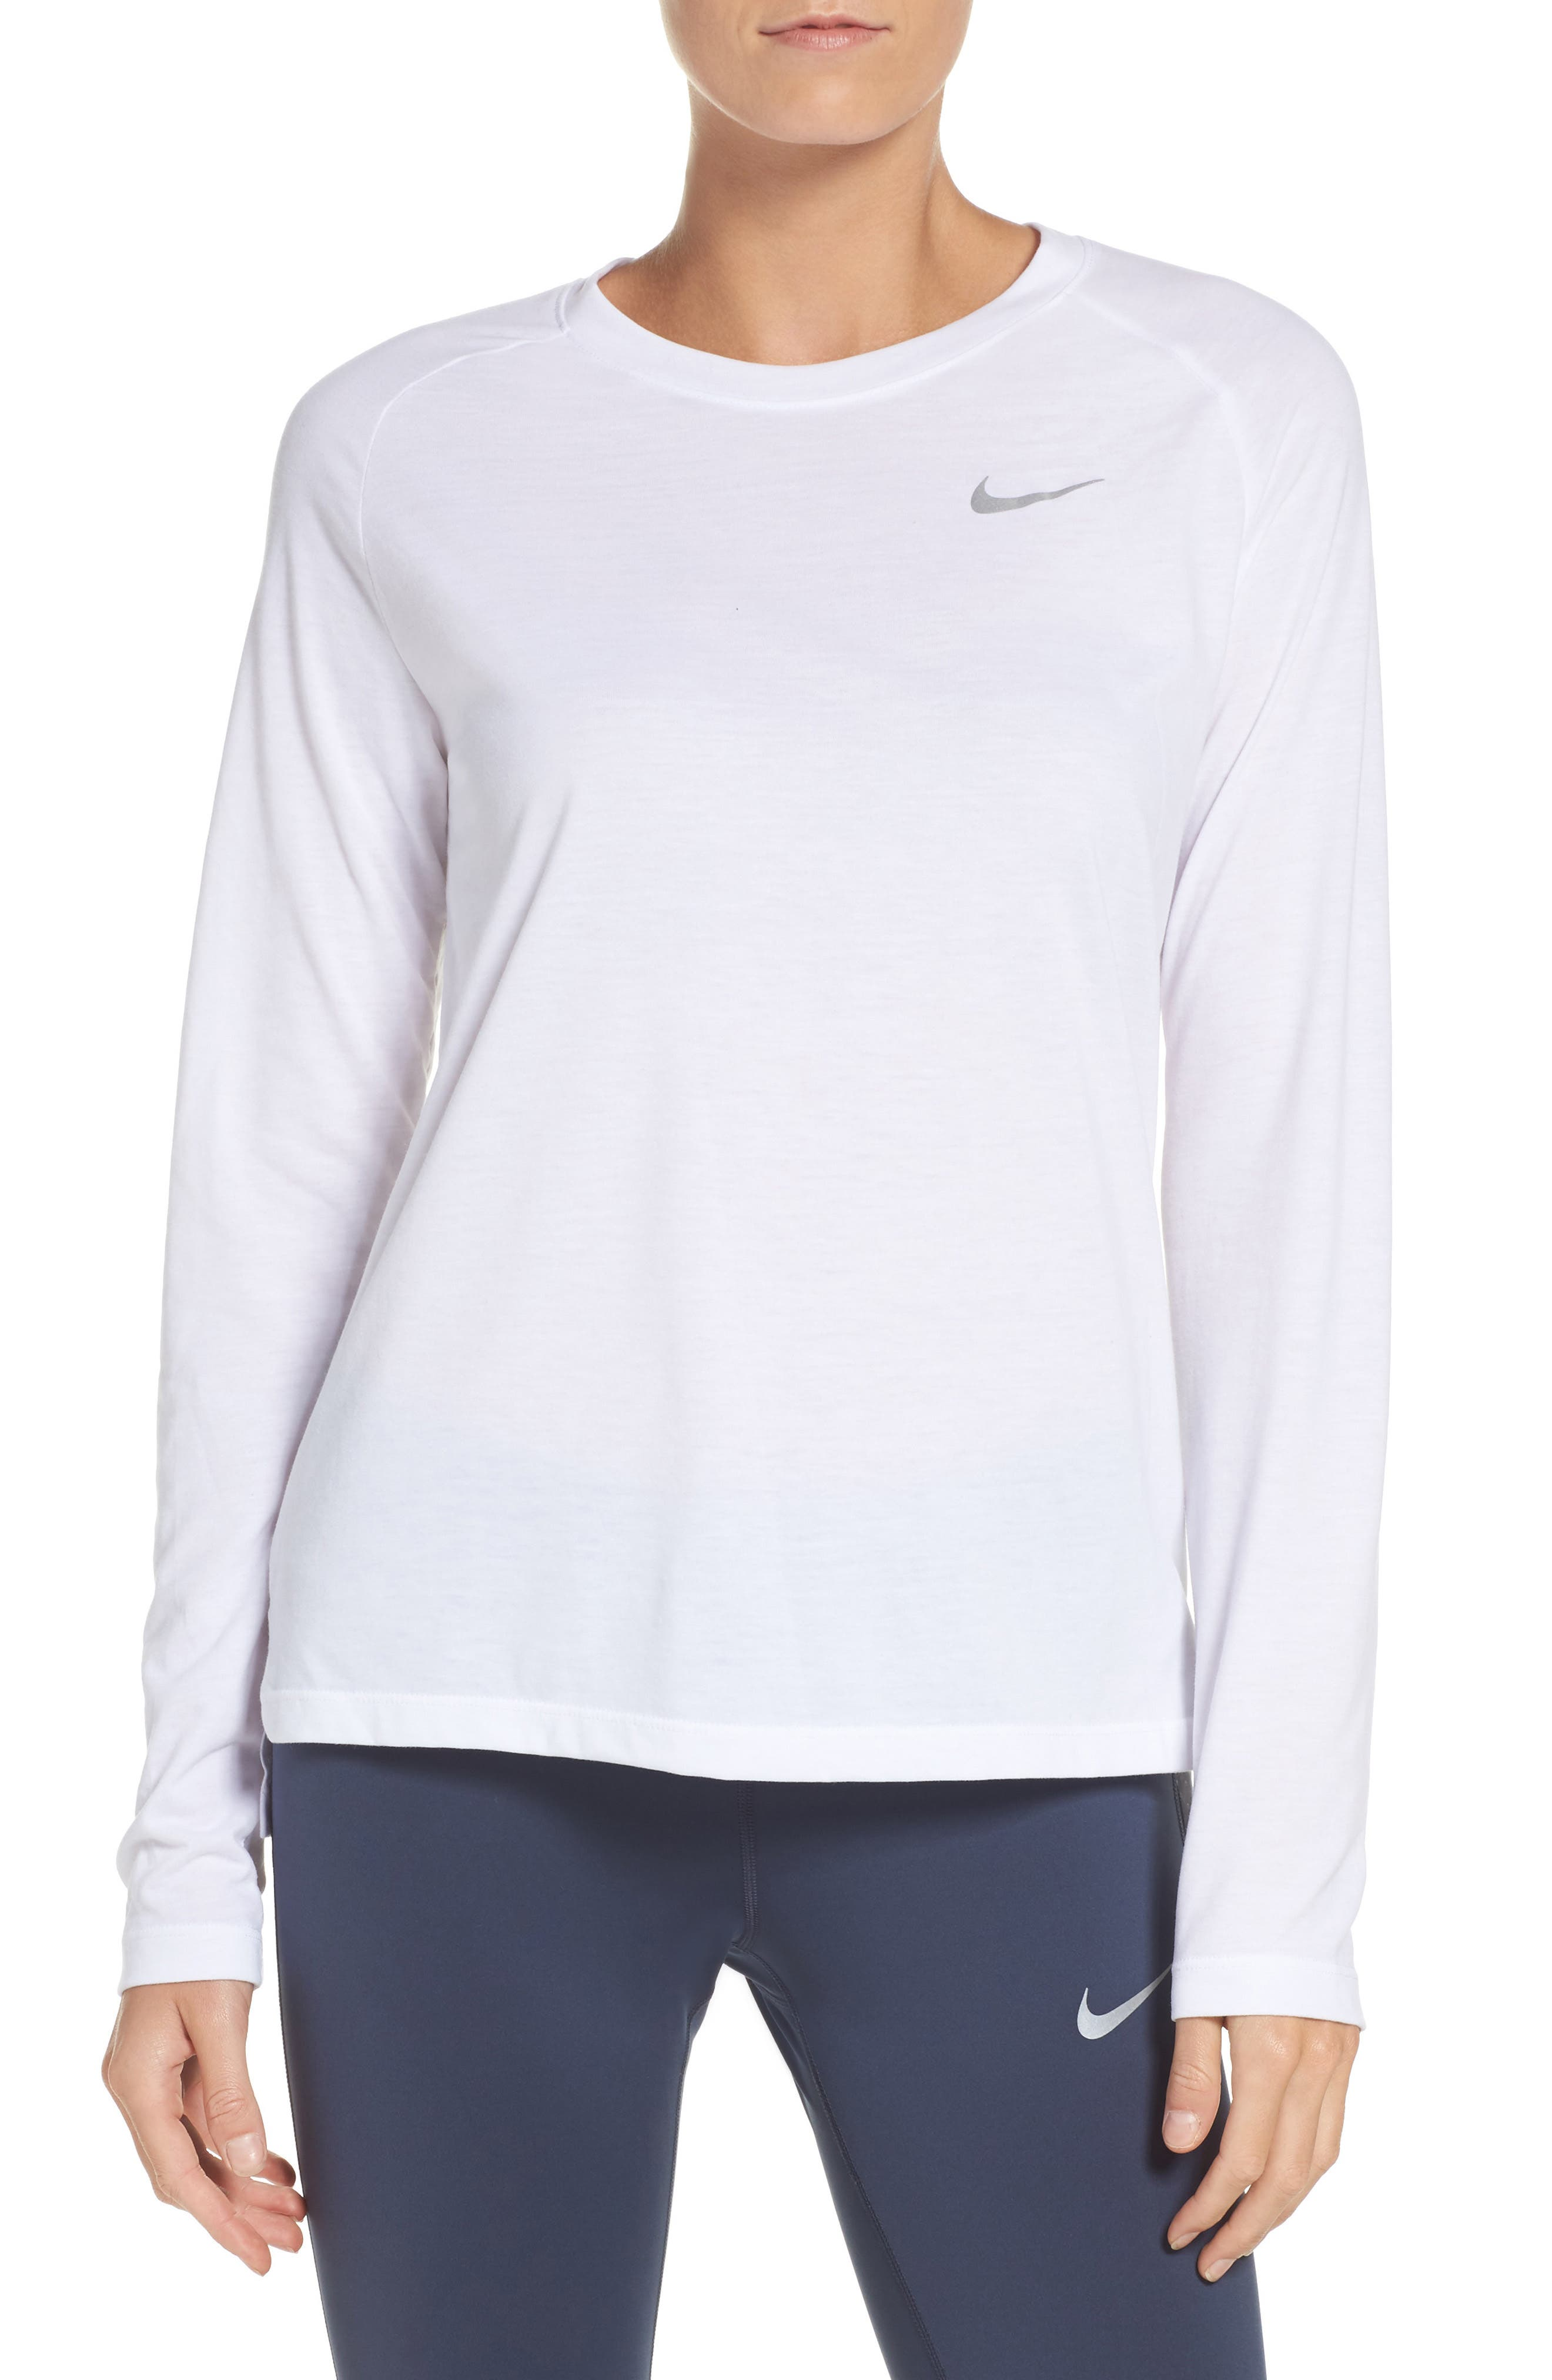 Breathe Tailwind Running Top,                         Main,                         color, White